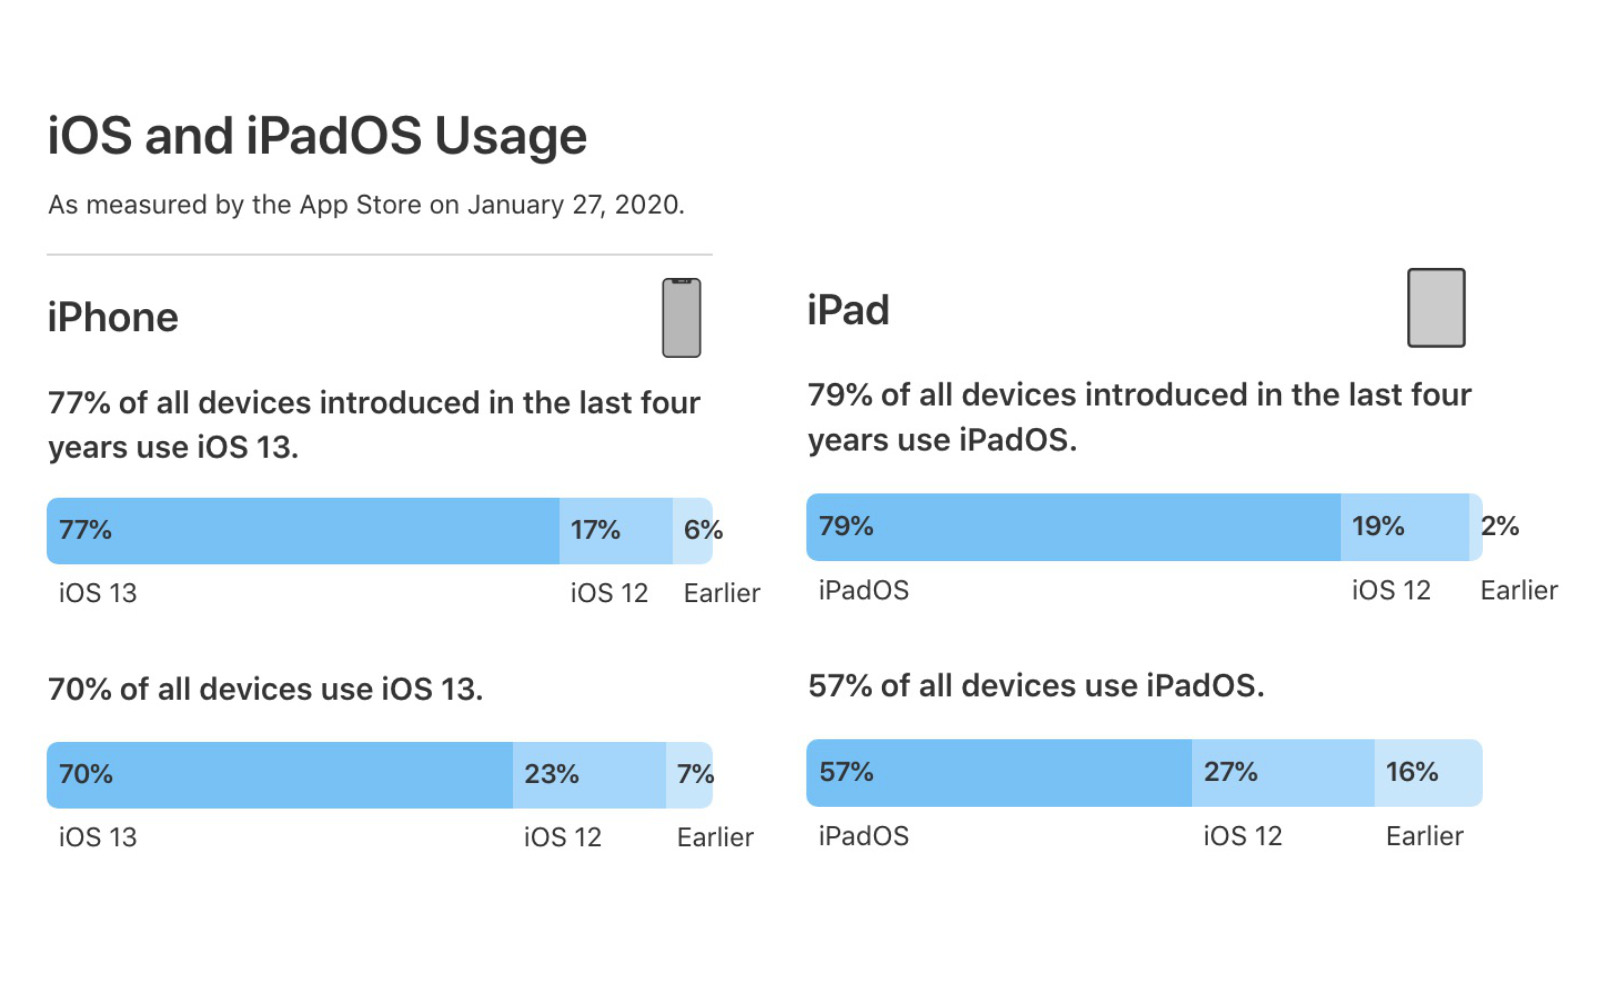 Ios and ipados usage